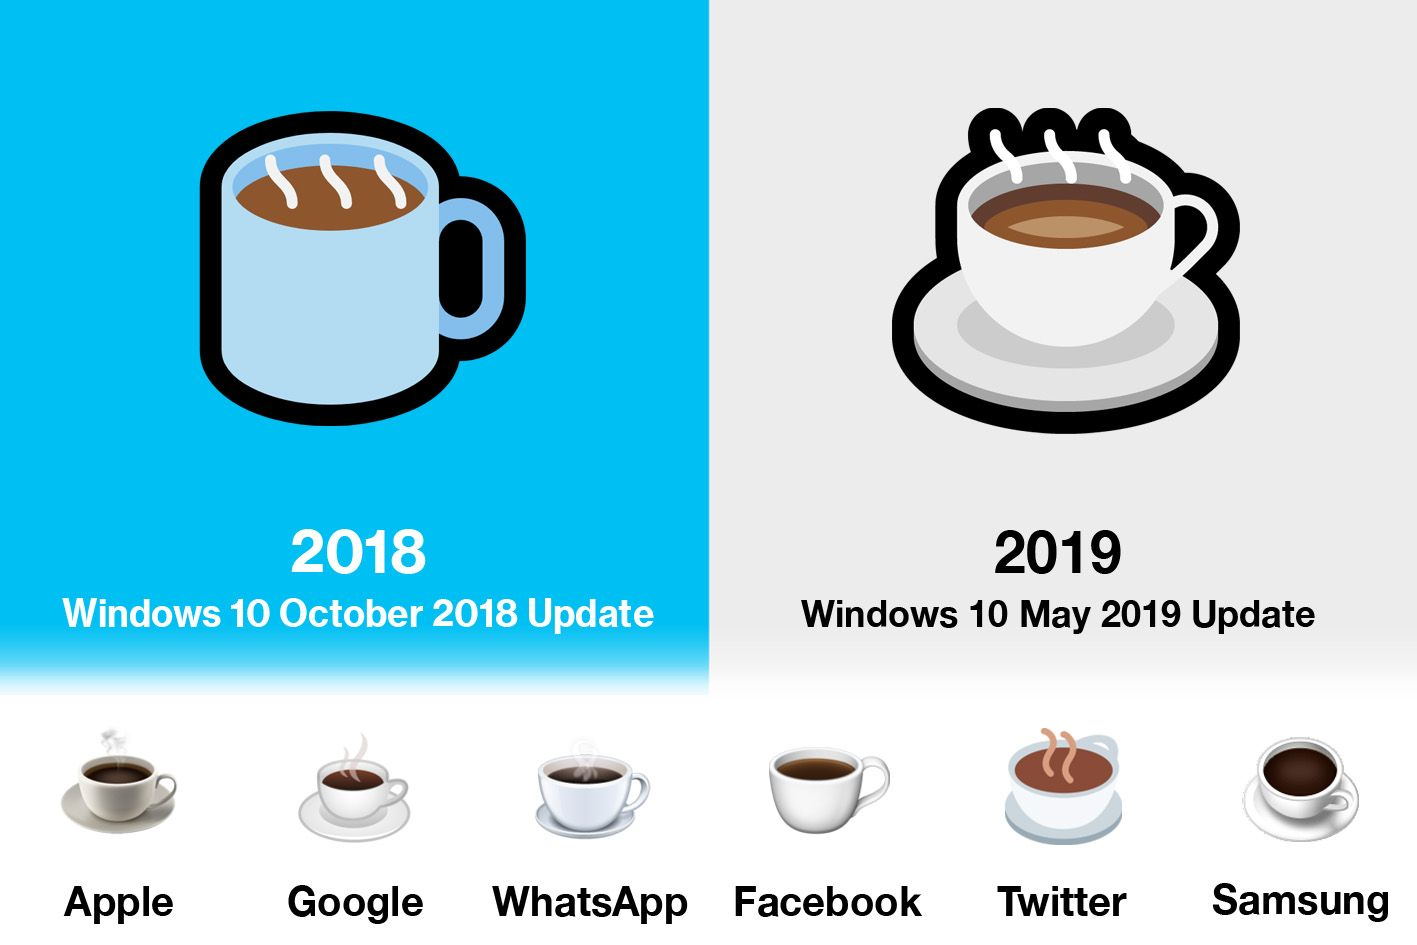 Emojipedia-End-Of-Year-Comparison-Image-Hot-Beverage-1